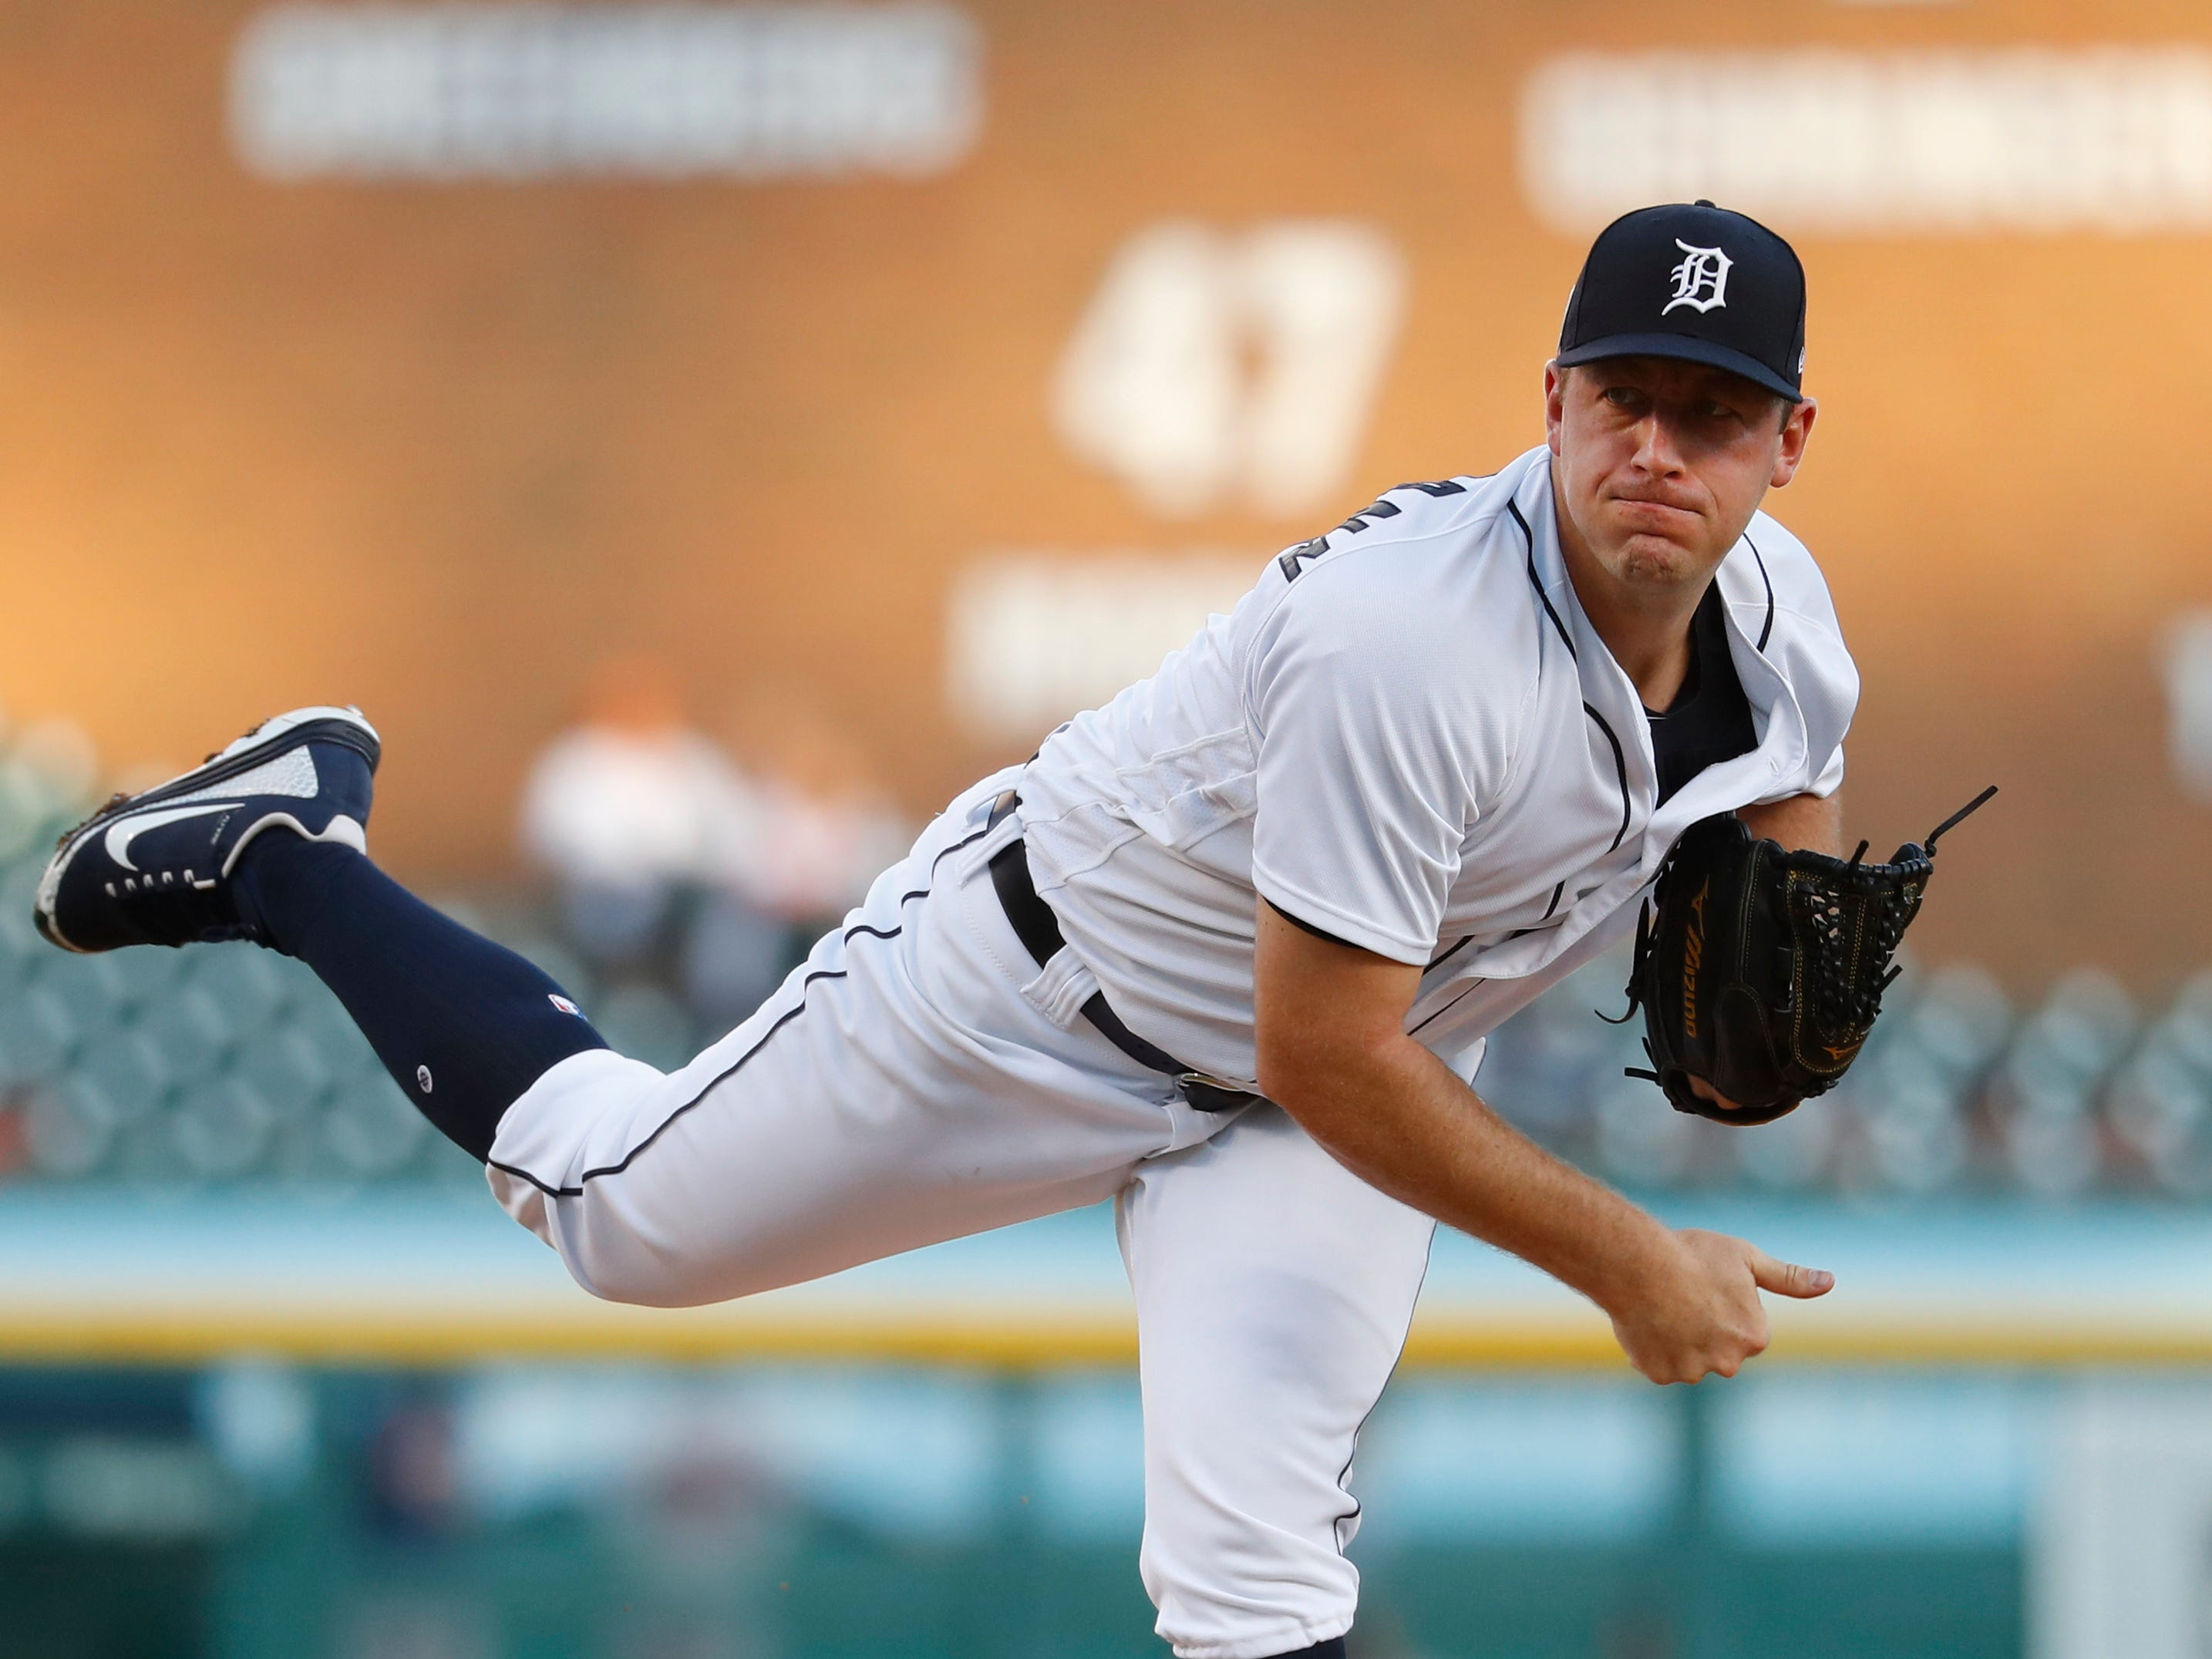 Detroit Tigers pitcher Jordan Zimmermann throws against the Houston Astros in the second inning.